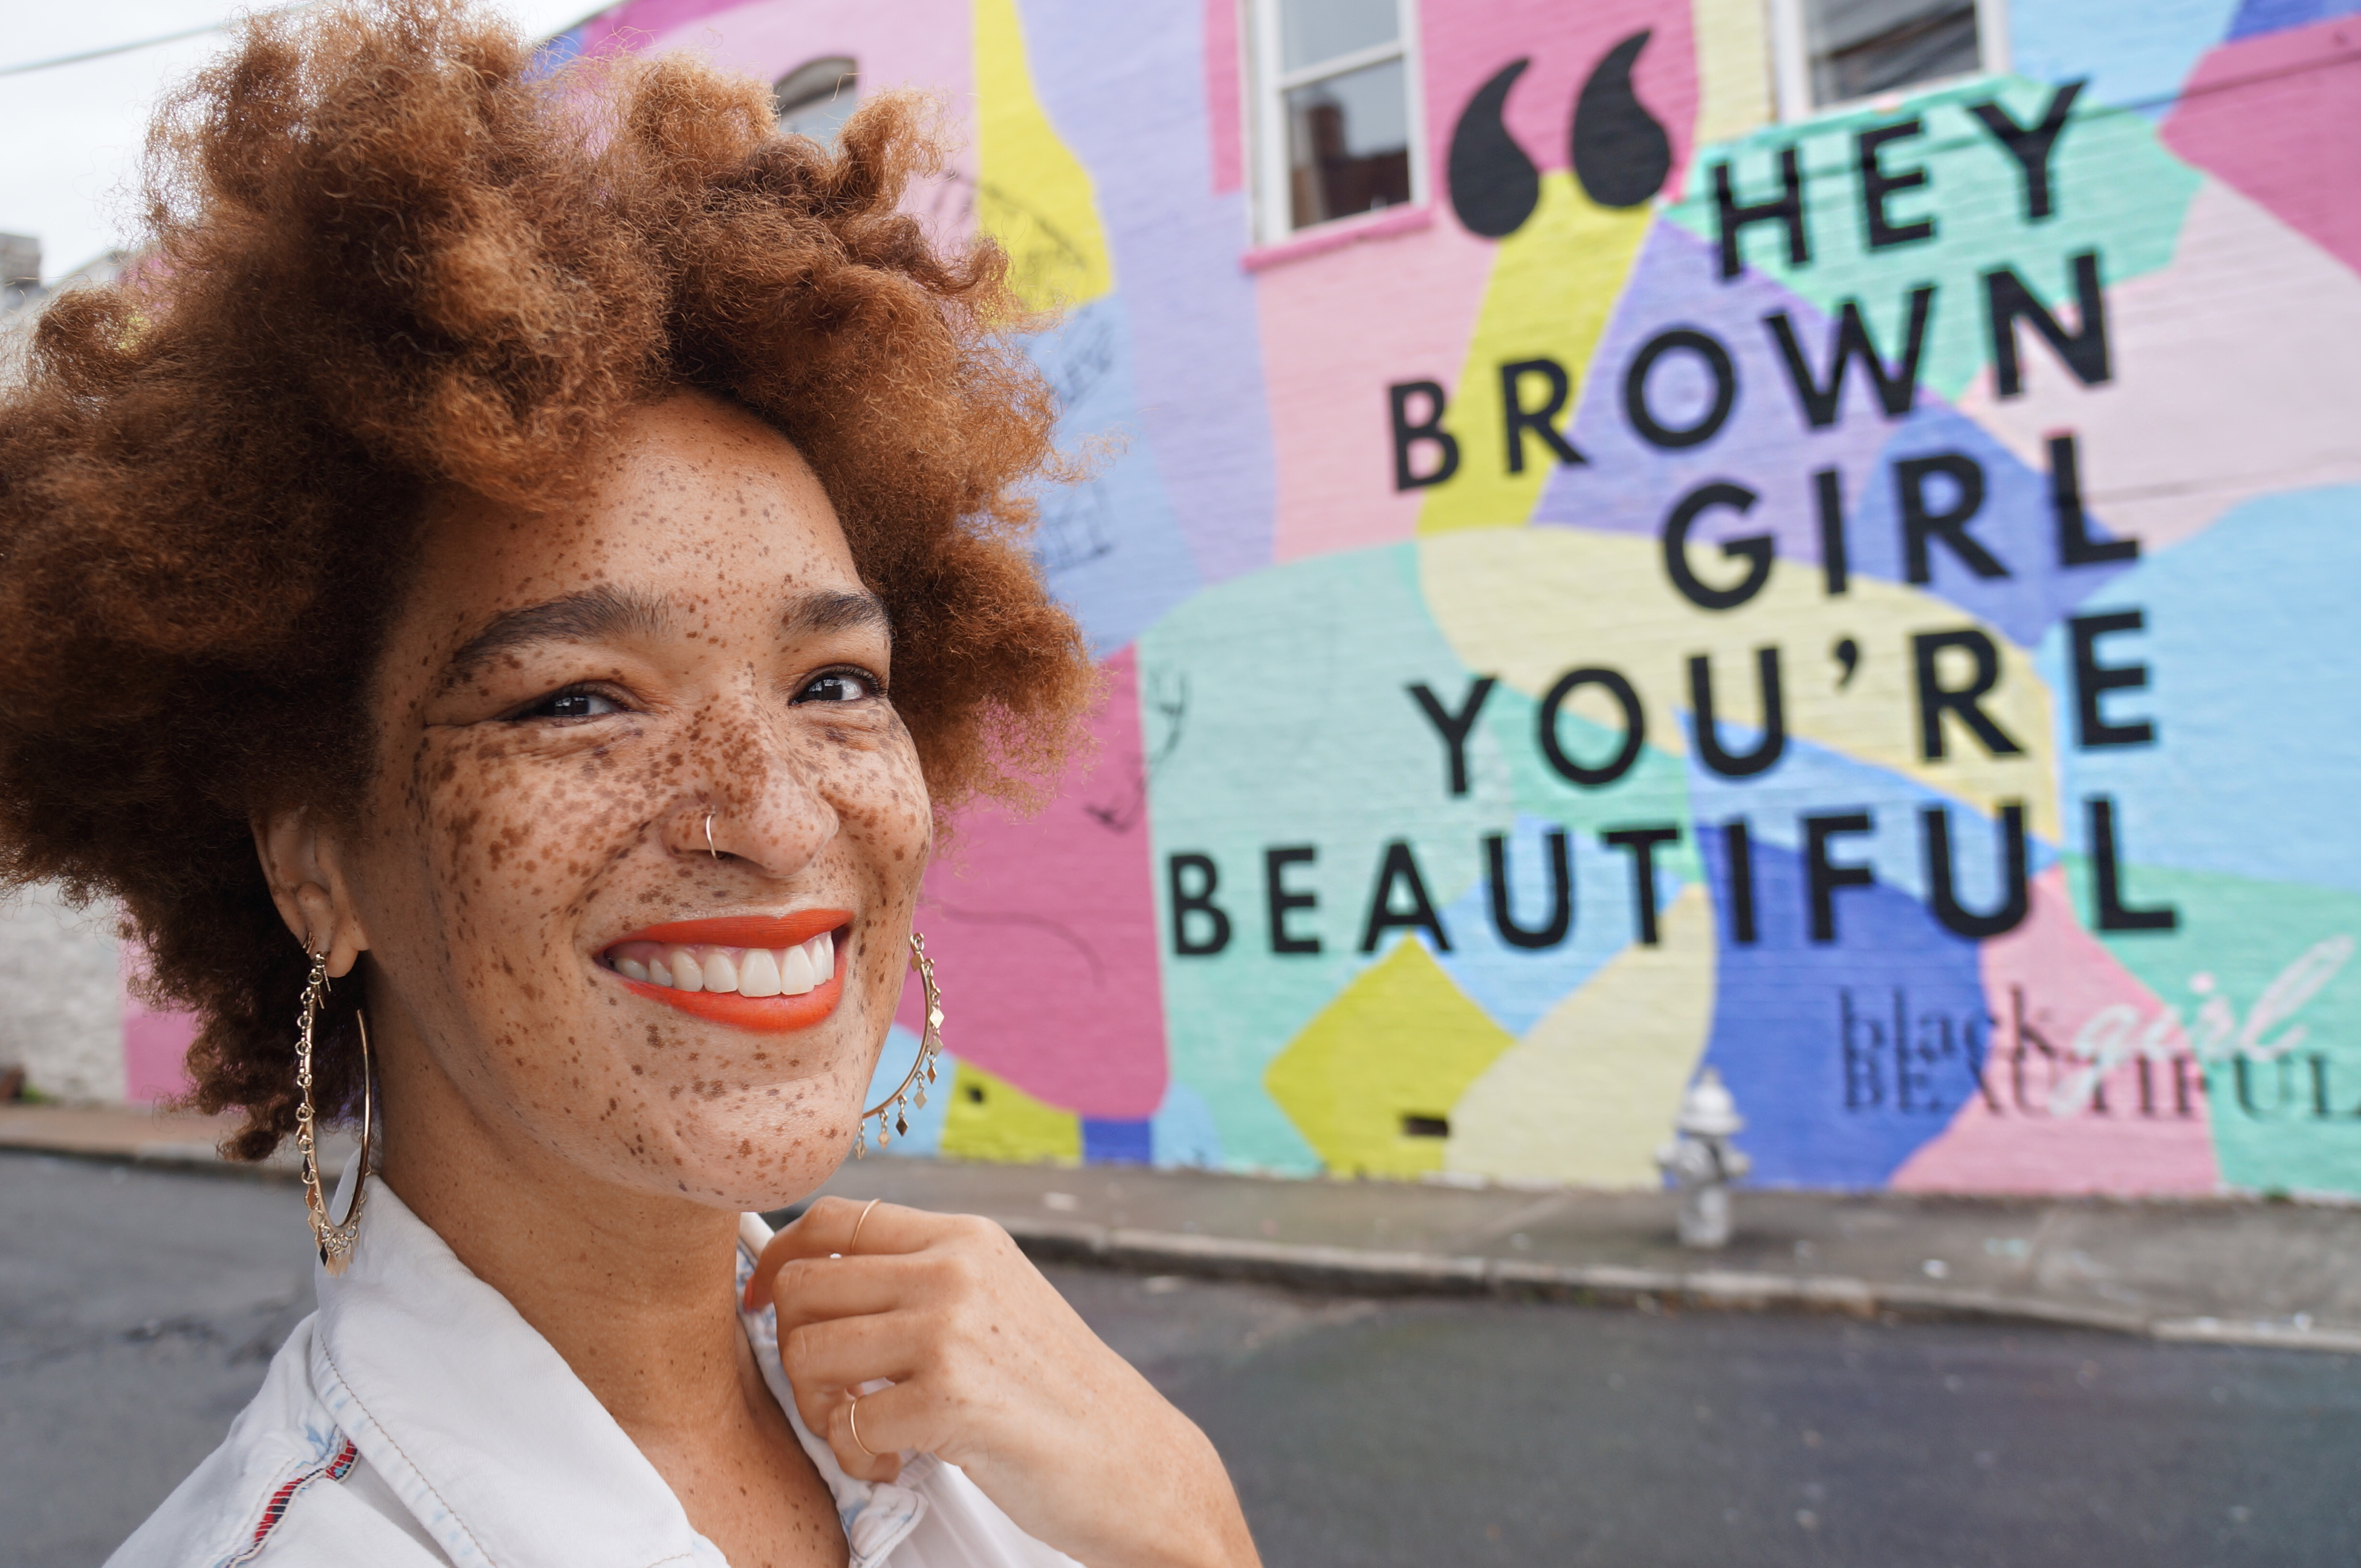 Hey Brown Girl You're Beautiful mural